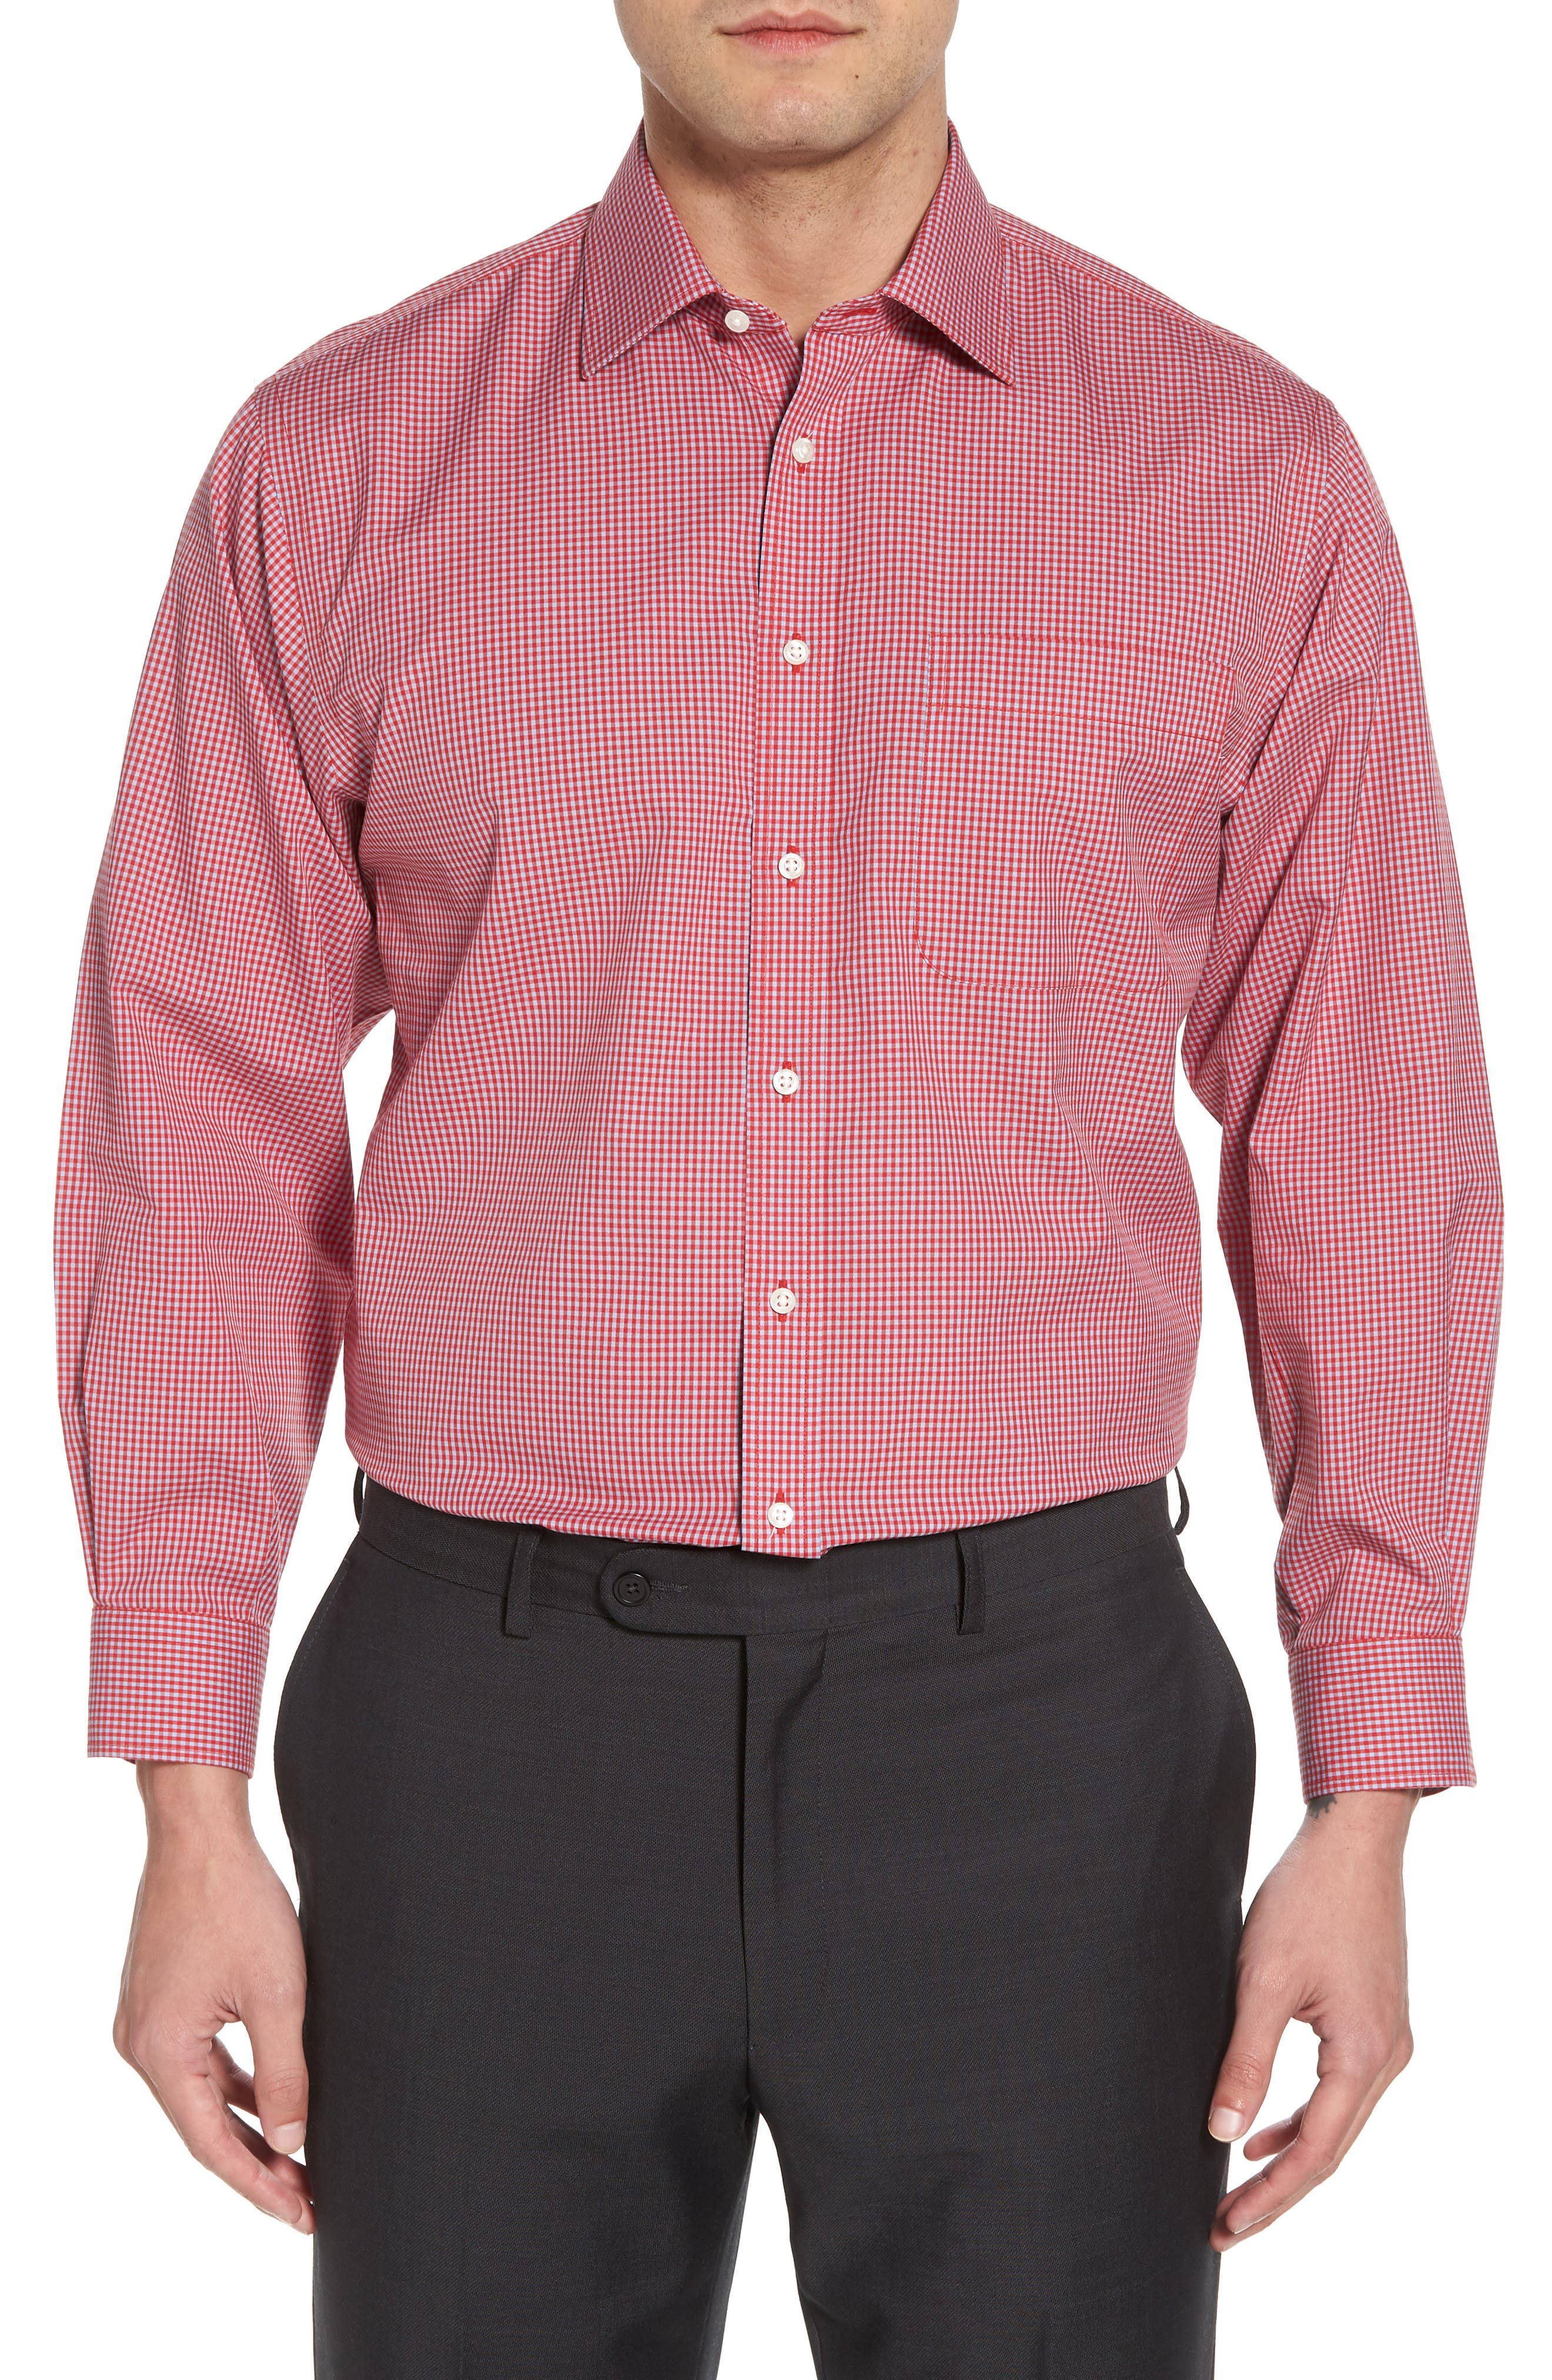 Main Image - Nordstrom Men's Shop Smartcare Classic Fit Check Dress Shirt